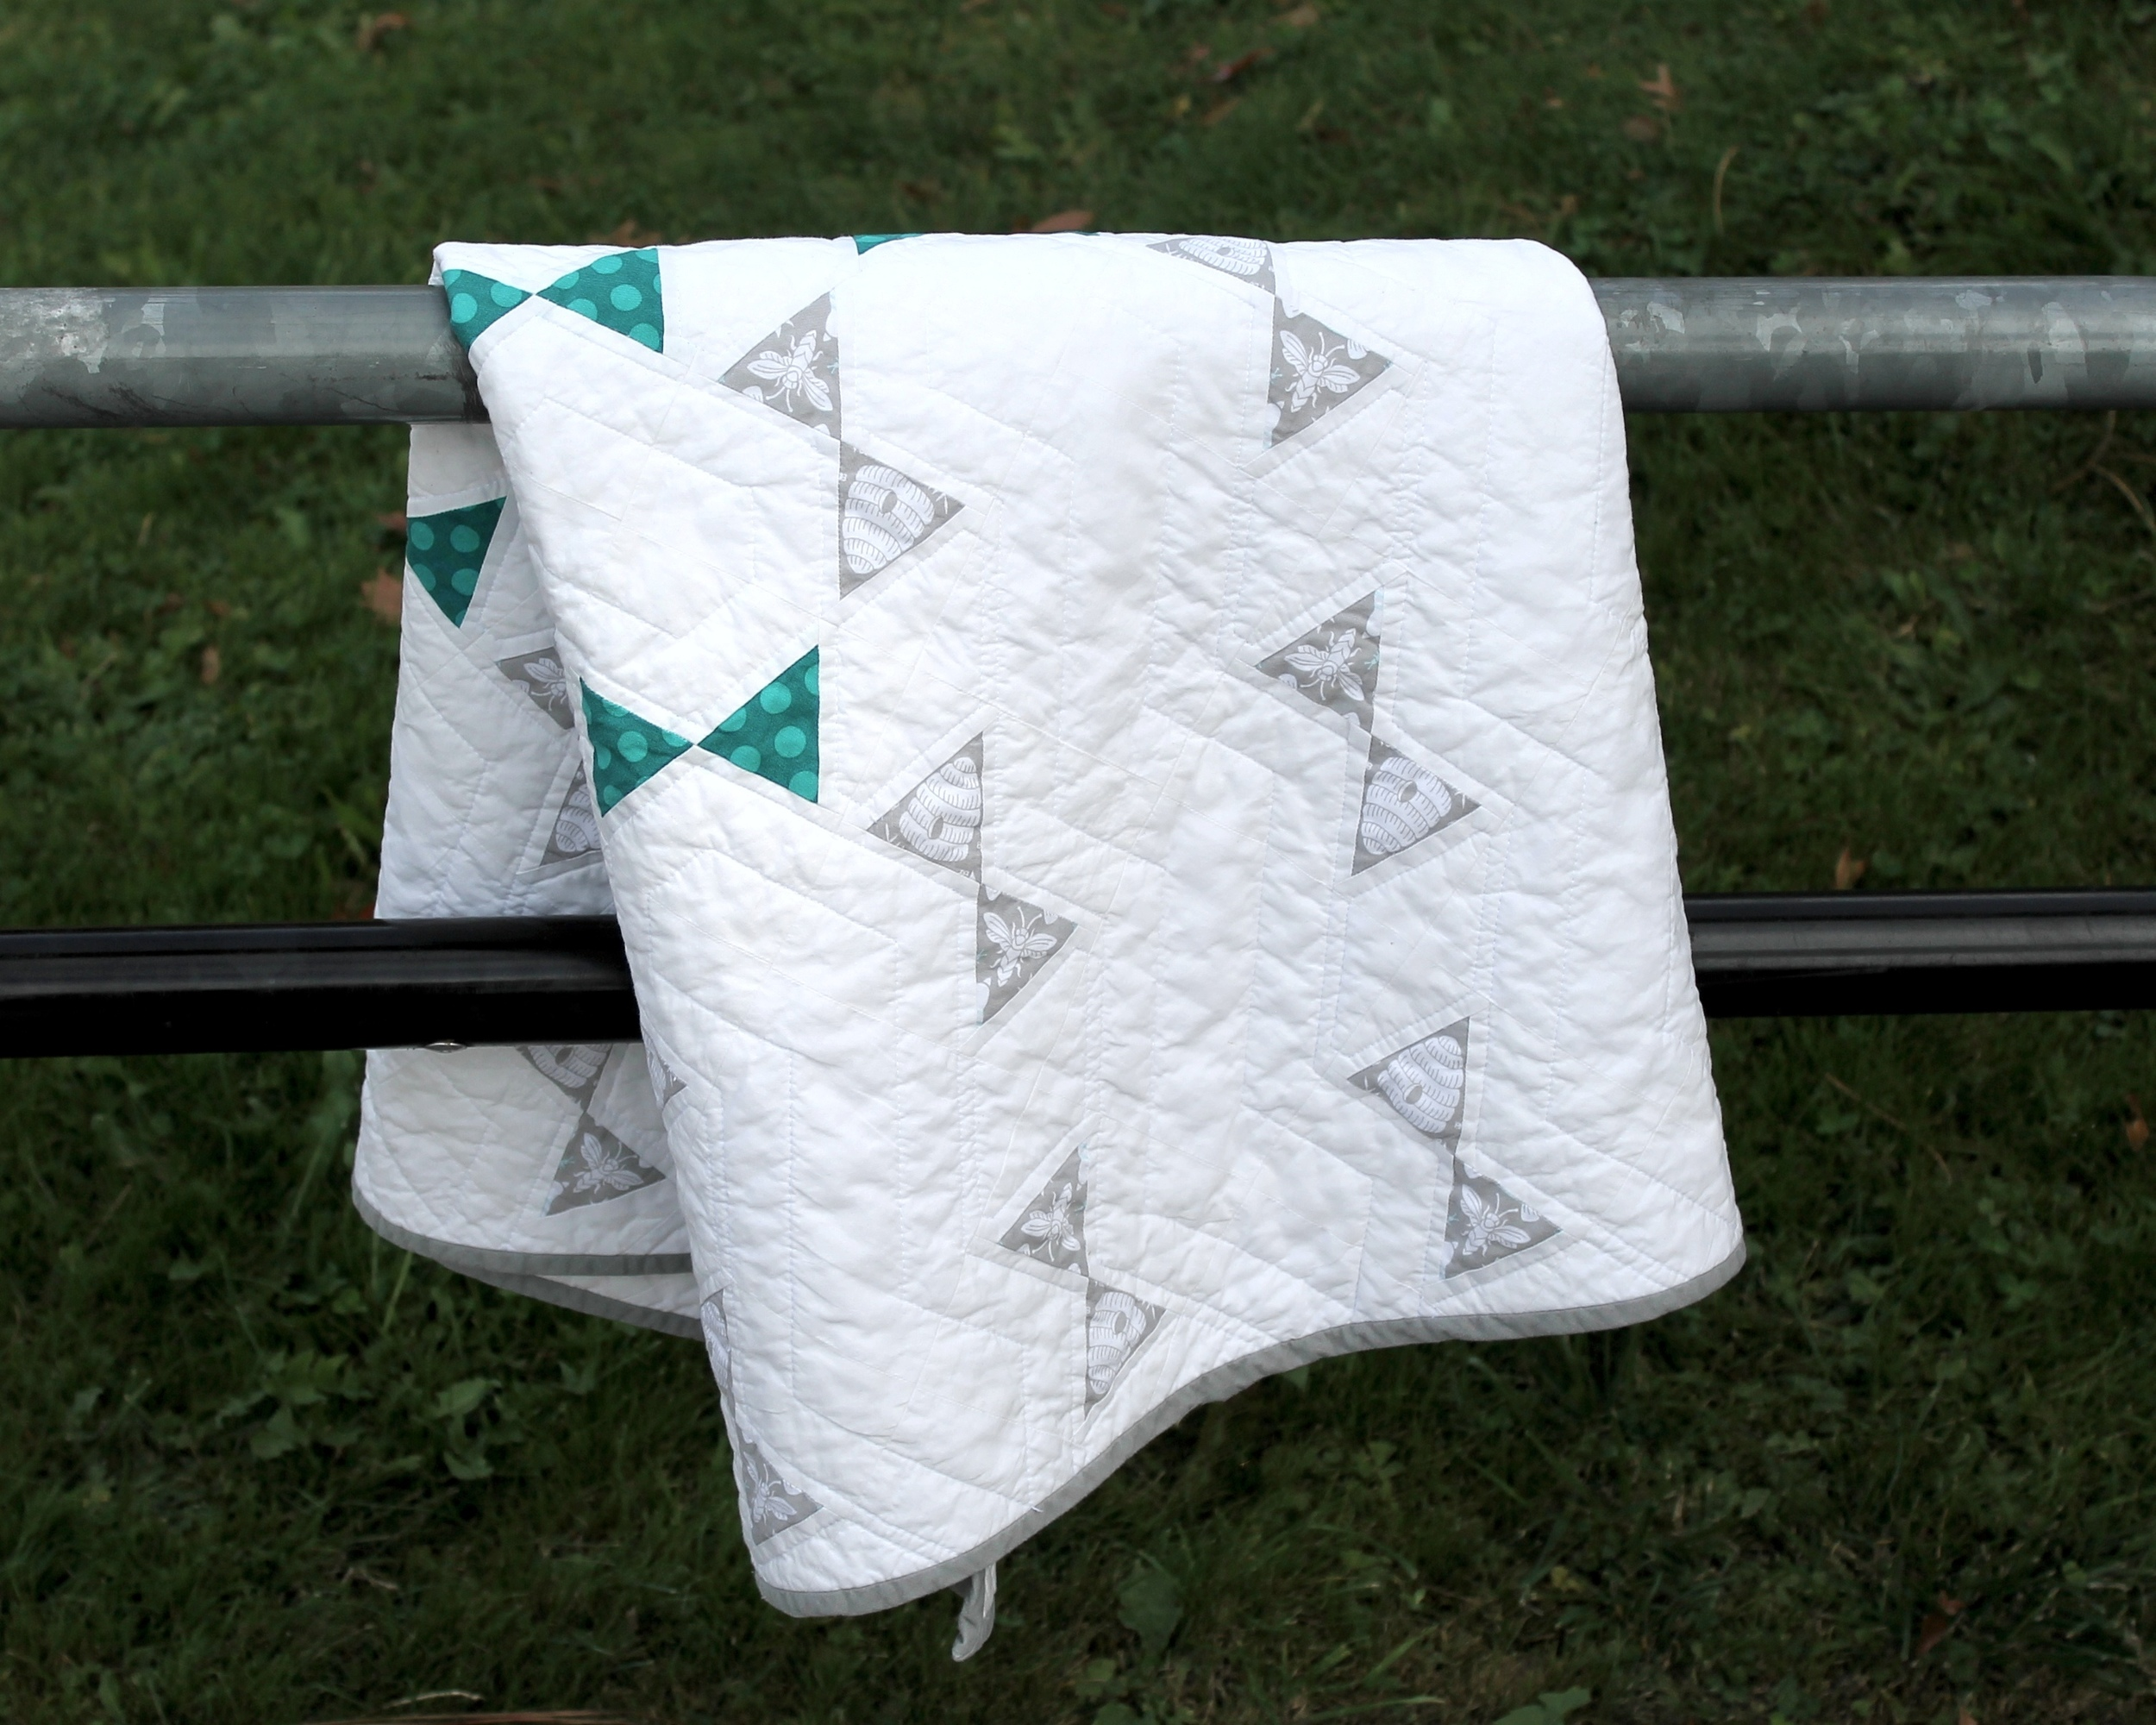 Gray and teal modern baby quilt draped on a fence